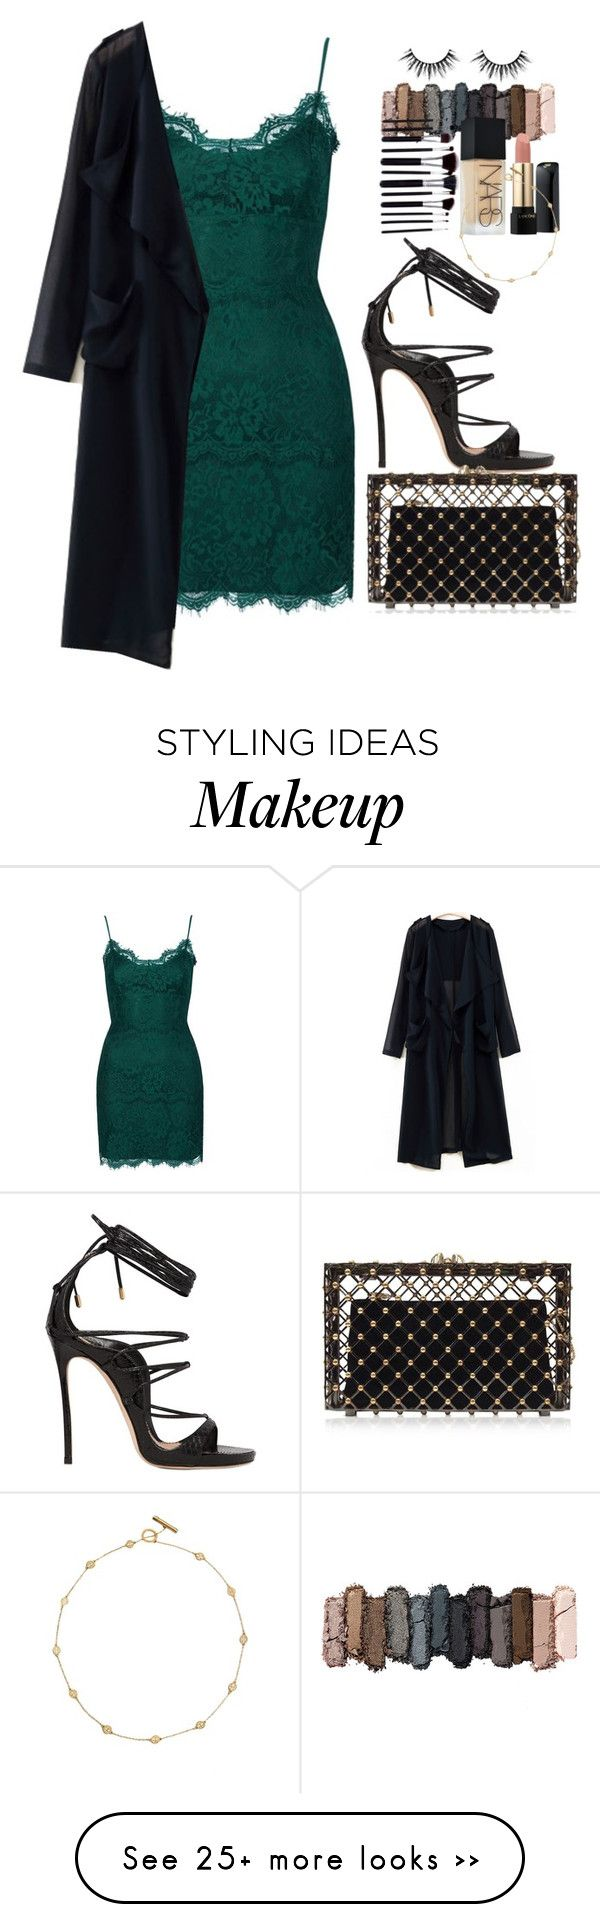 """""""OUTFIT: The Second Date"""" by awomanofparis on Polyvore featuring Topshop, Dsquared2, Charlotte Olympia, Urban Decay, Lancôme, NARS Cosmetics, Tory Burch, dress and emerald"""